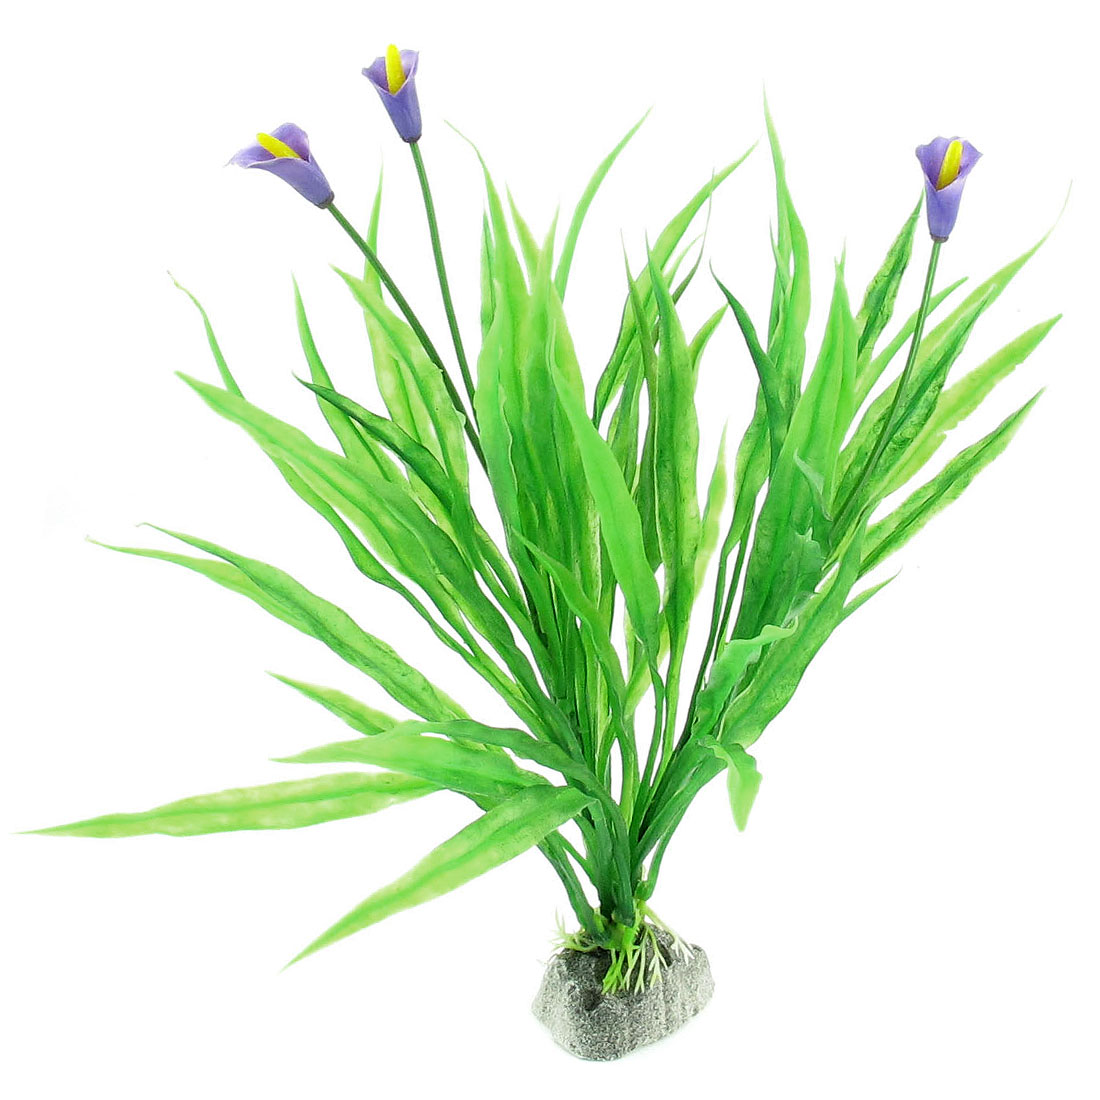 Plastic-Green-Purple-Flower-Manmade-Aquatic-Plant-Fish-Tank-Aquarium-Decor